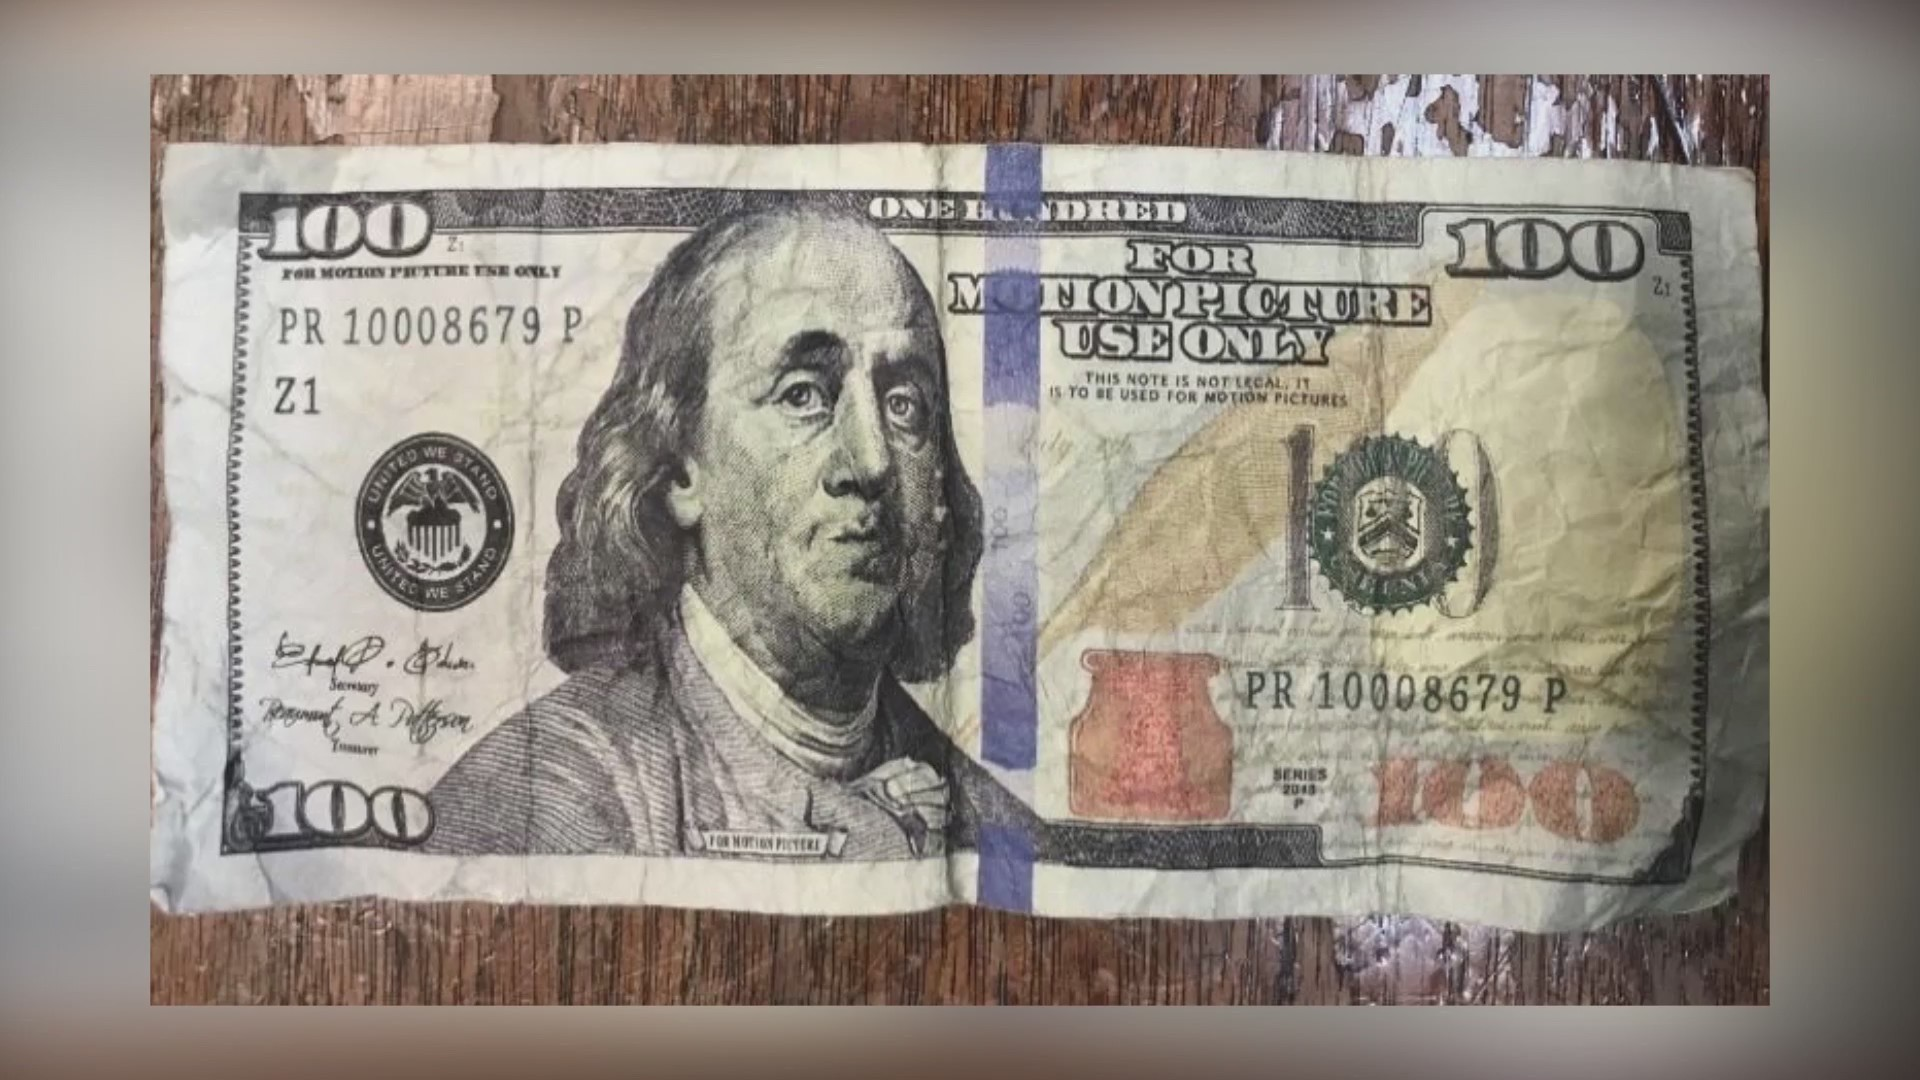 COUNTERFEIT CASH CIRCULATING